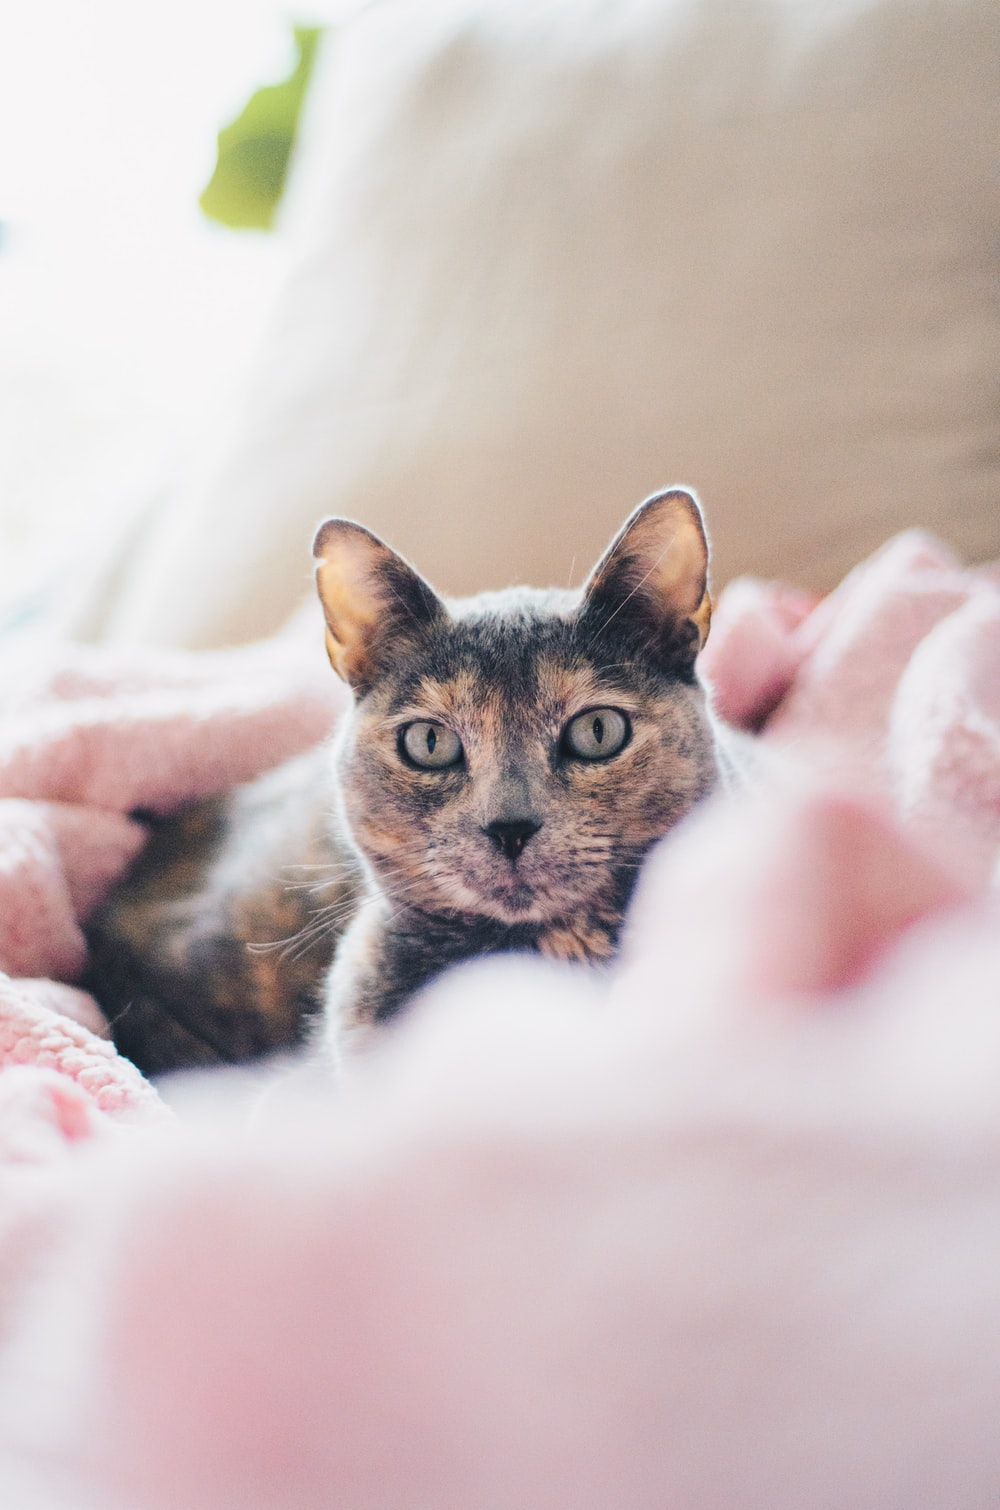 brown and gray cat on pink textile